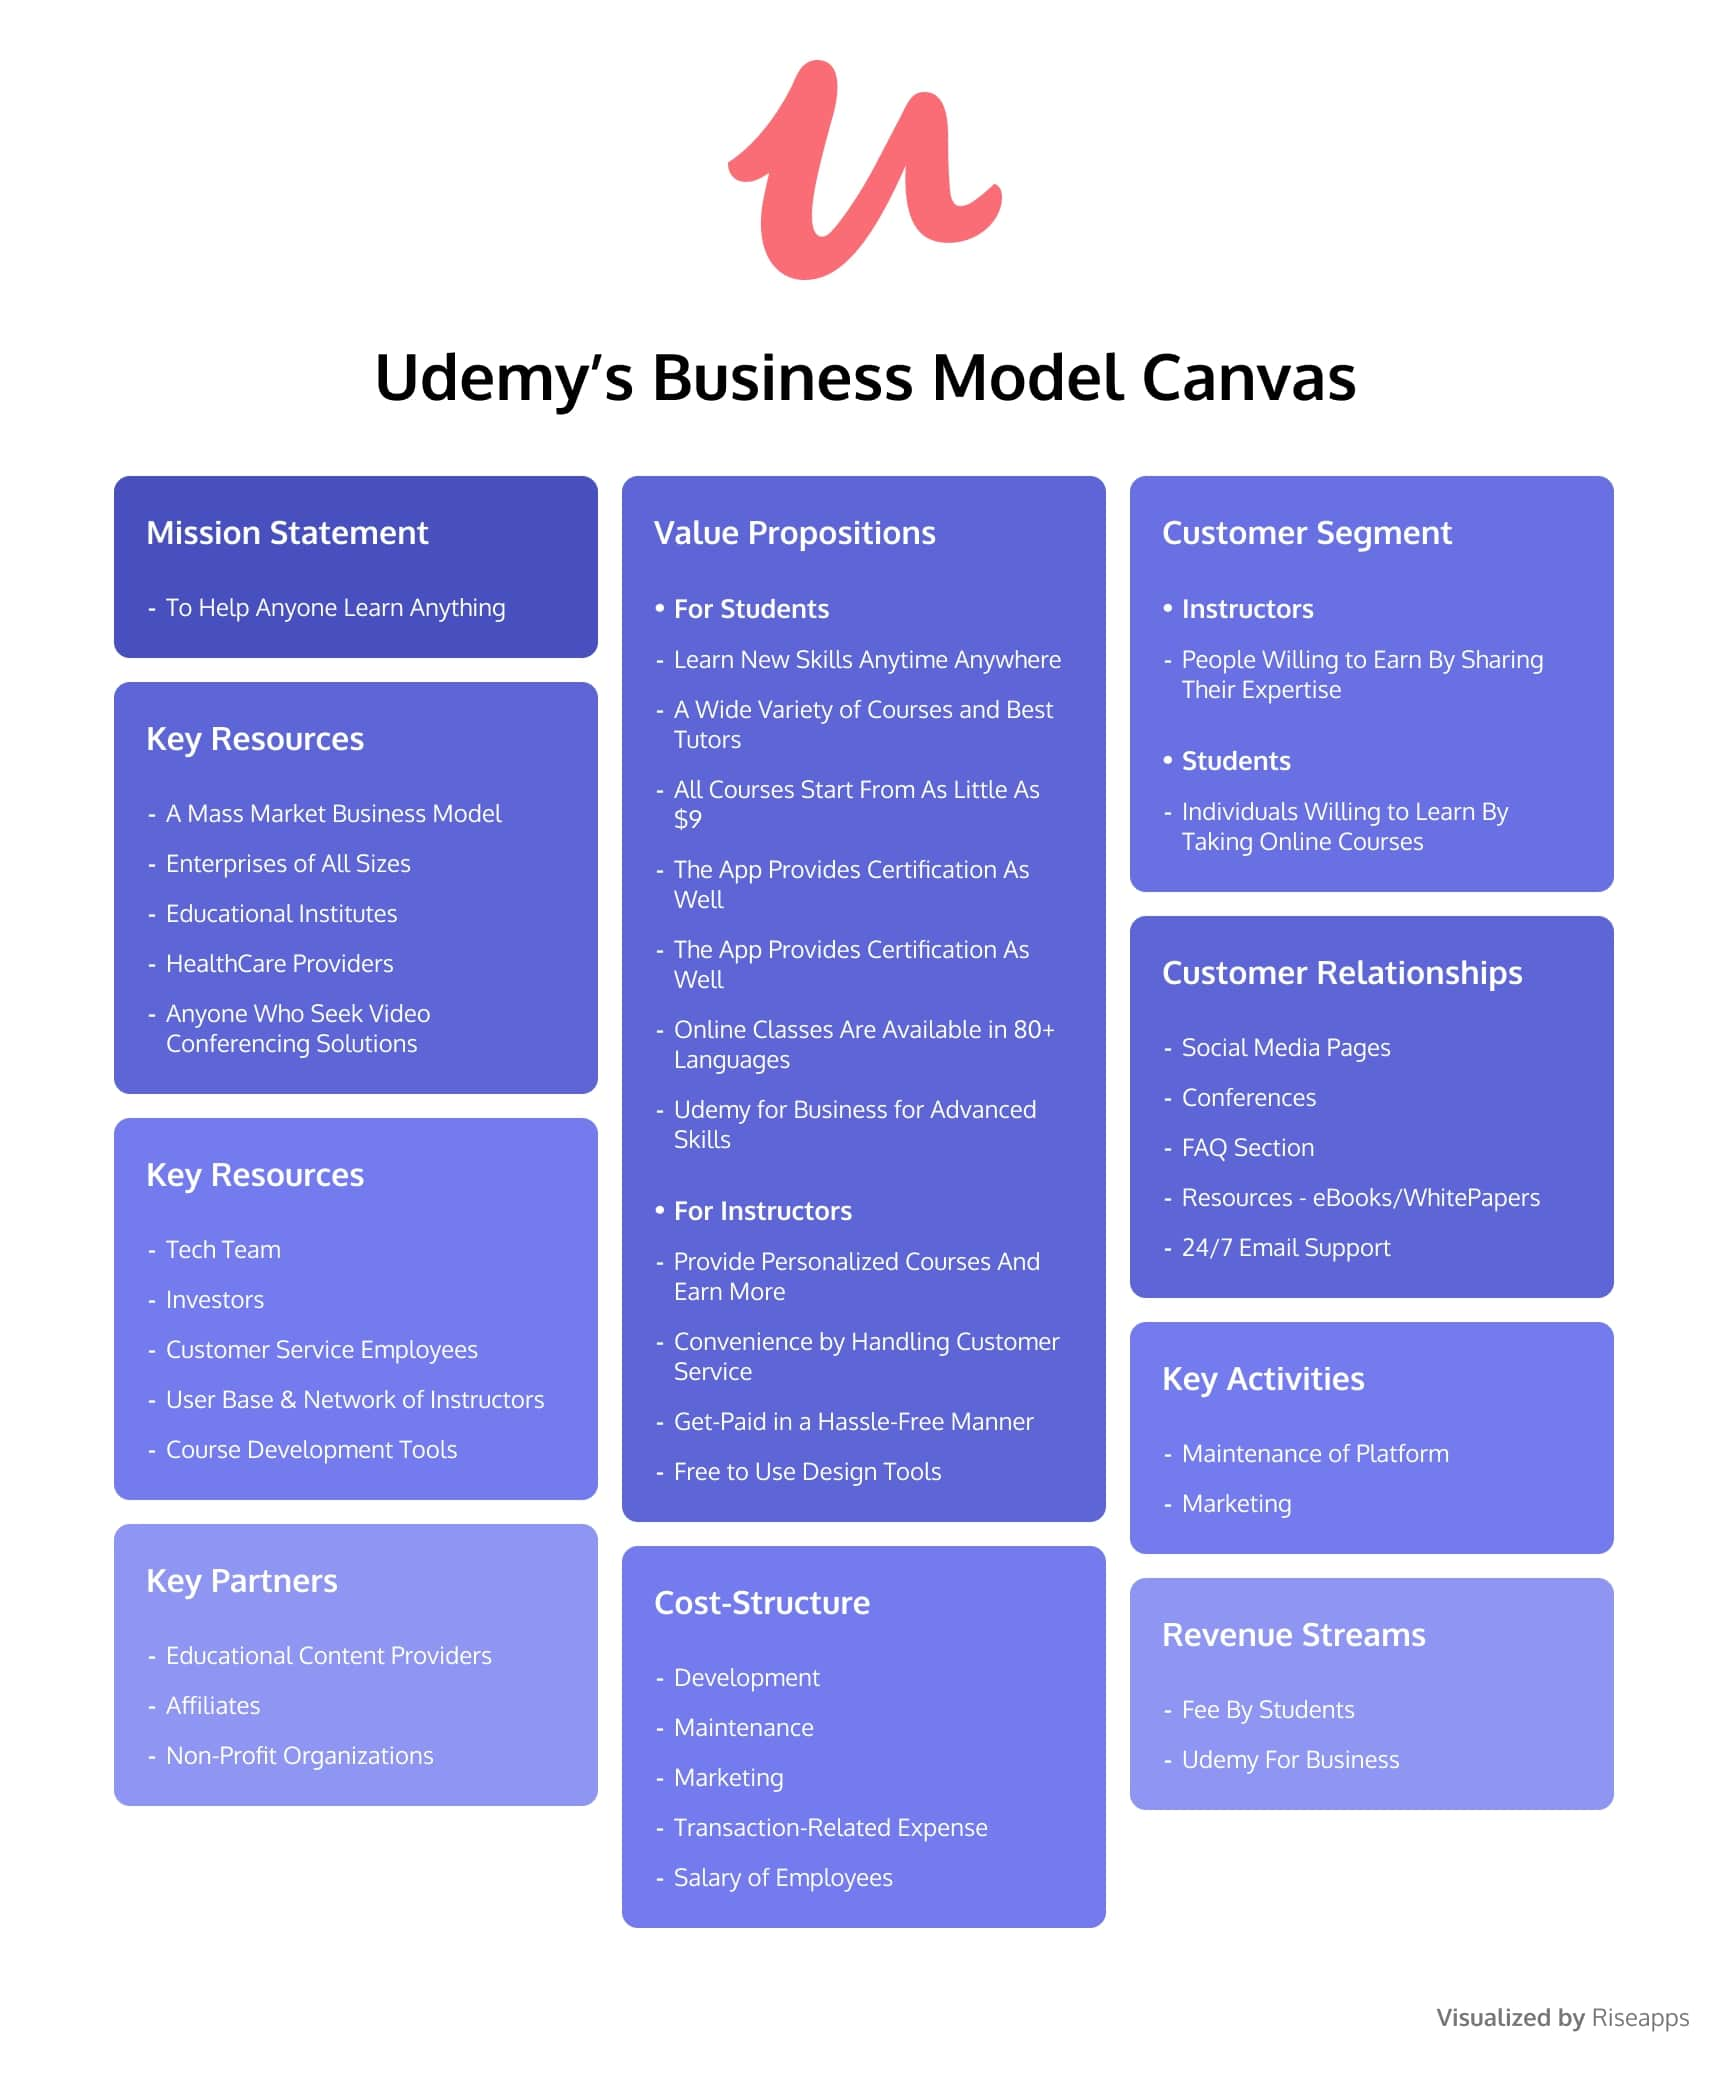 Udemy's Business Model Canvas